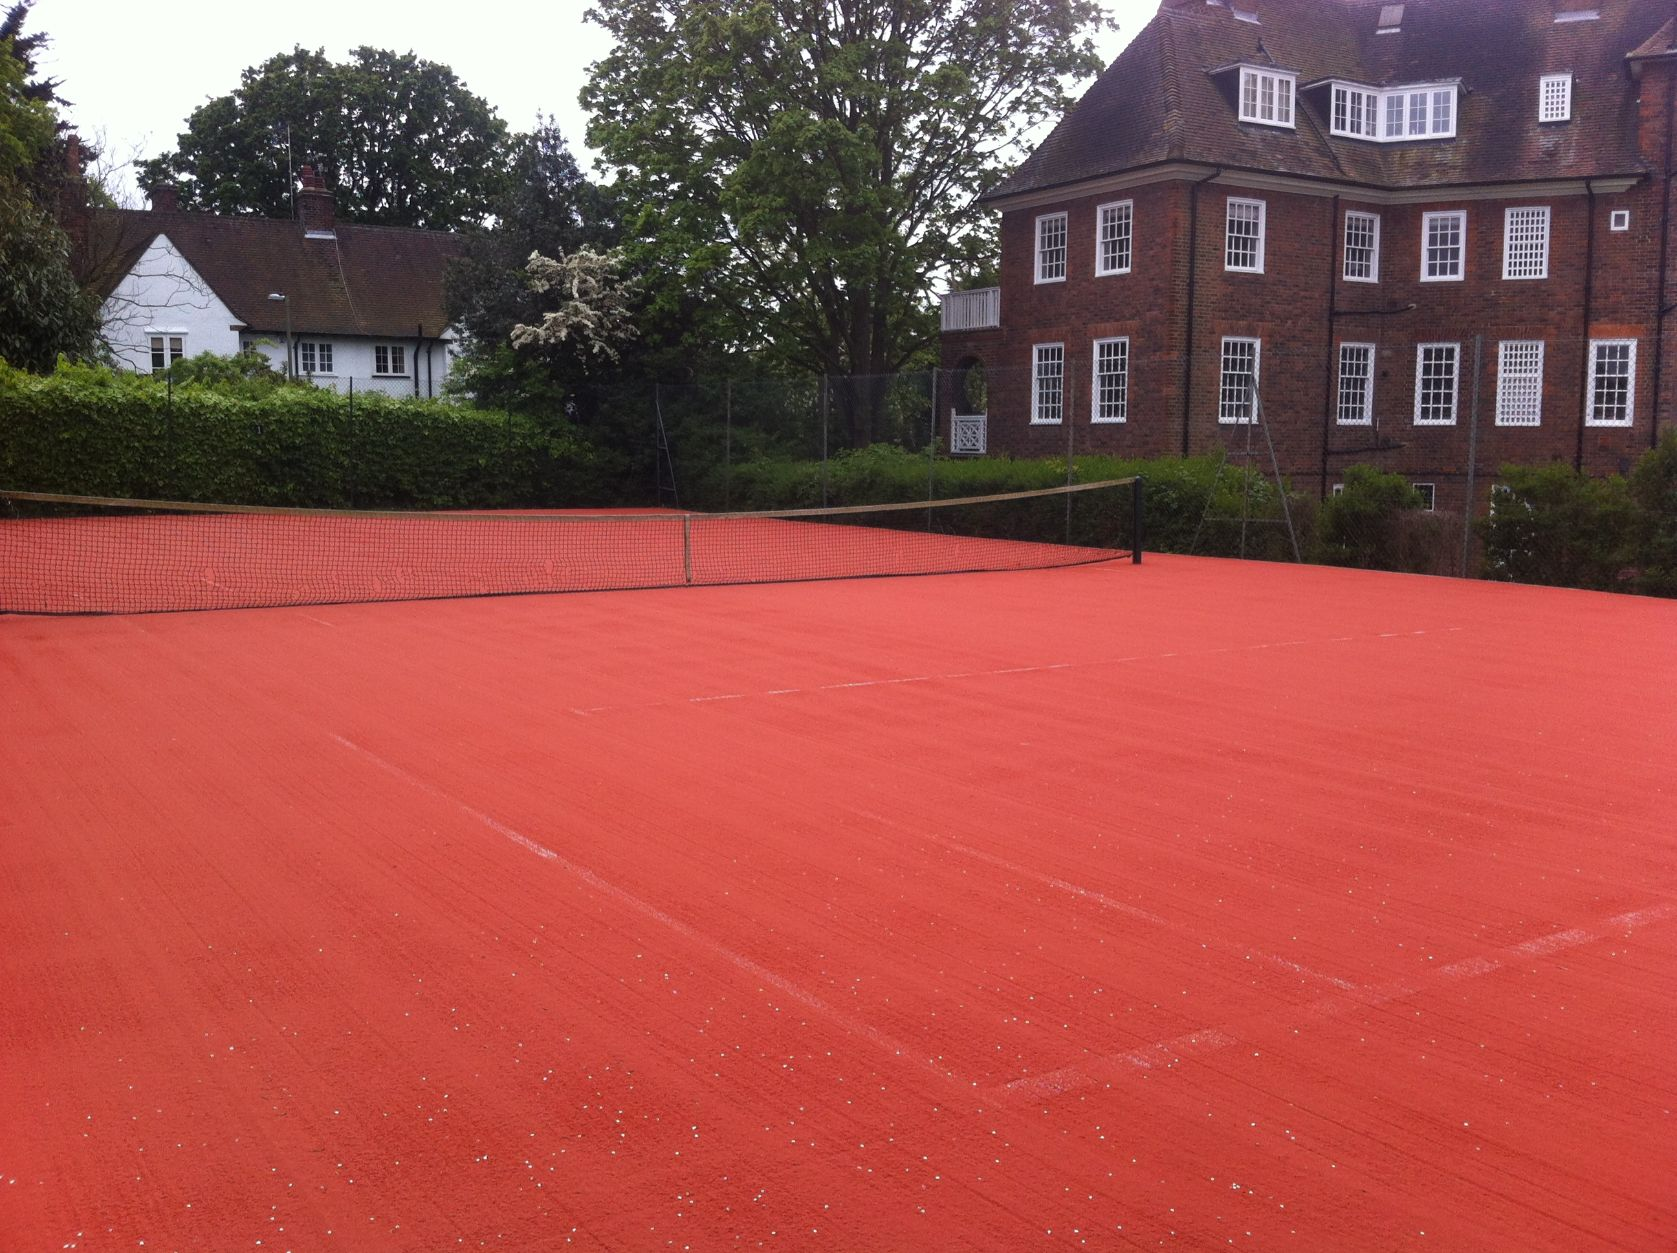 ETC Sports Surfaces will find just the right artificial clay tennis courts for your facility and players.